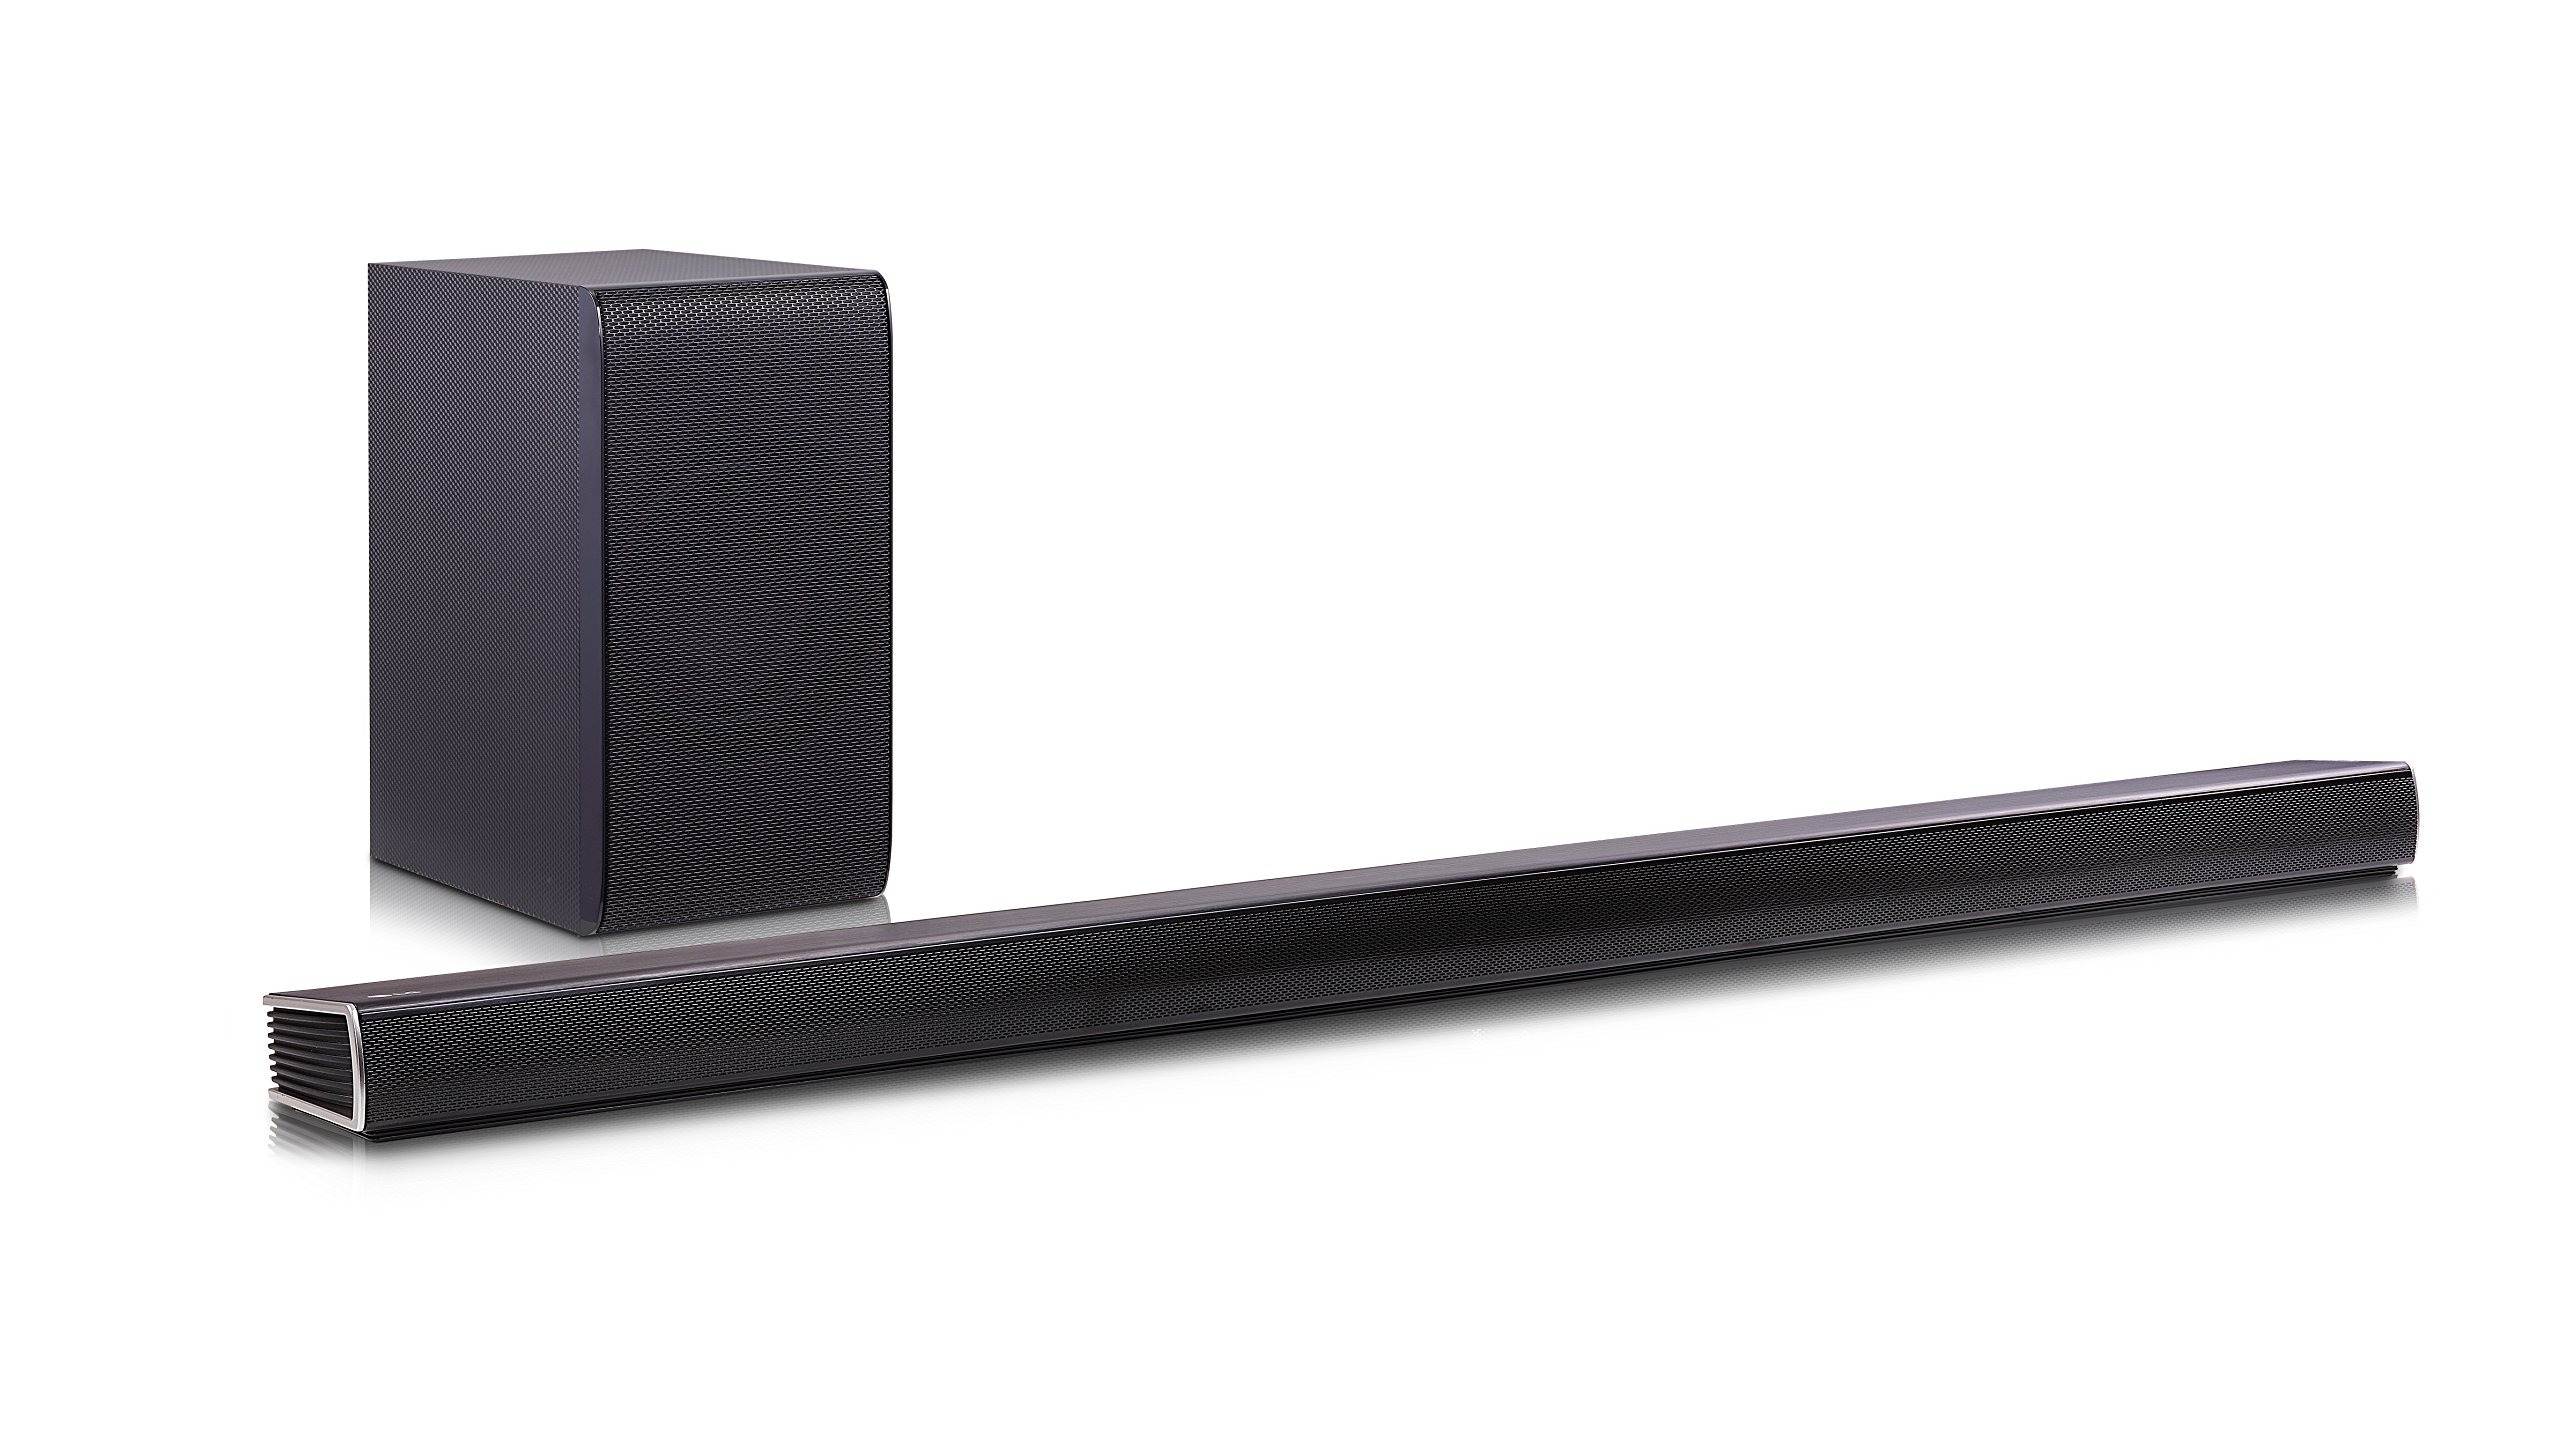 LG Electronics SH7B 4.1 Channel 360W Sound Bar with Wireless Subwoofer (2016 Model) by LG